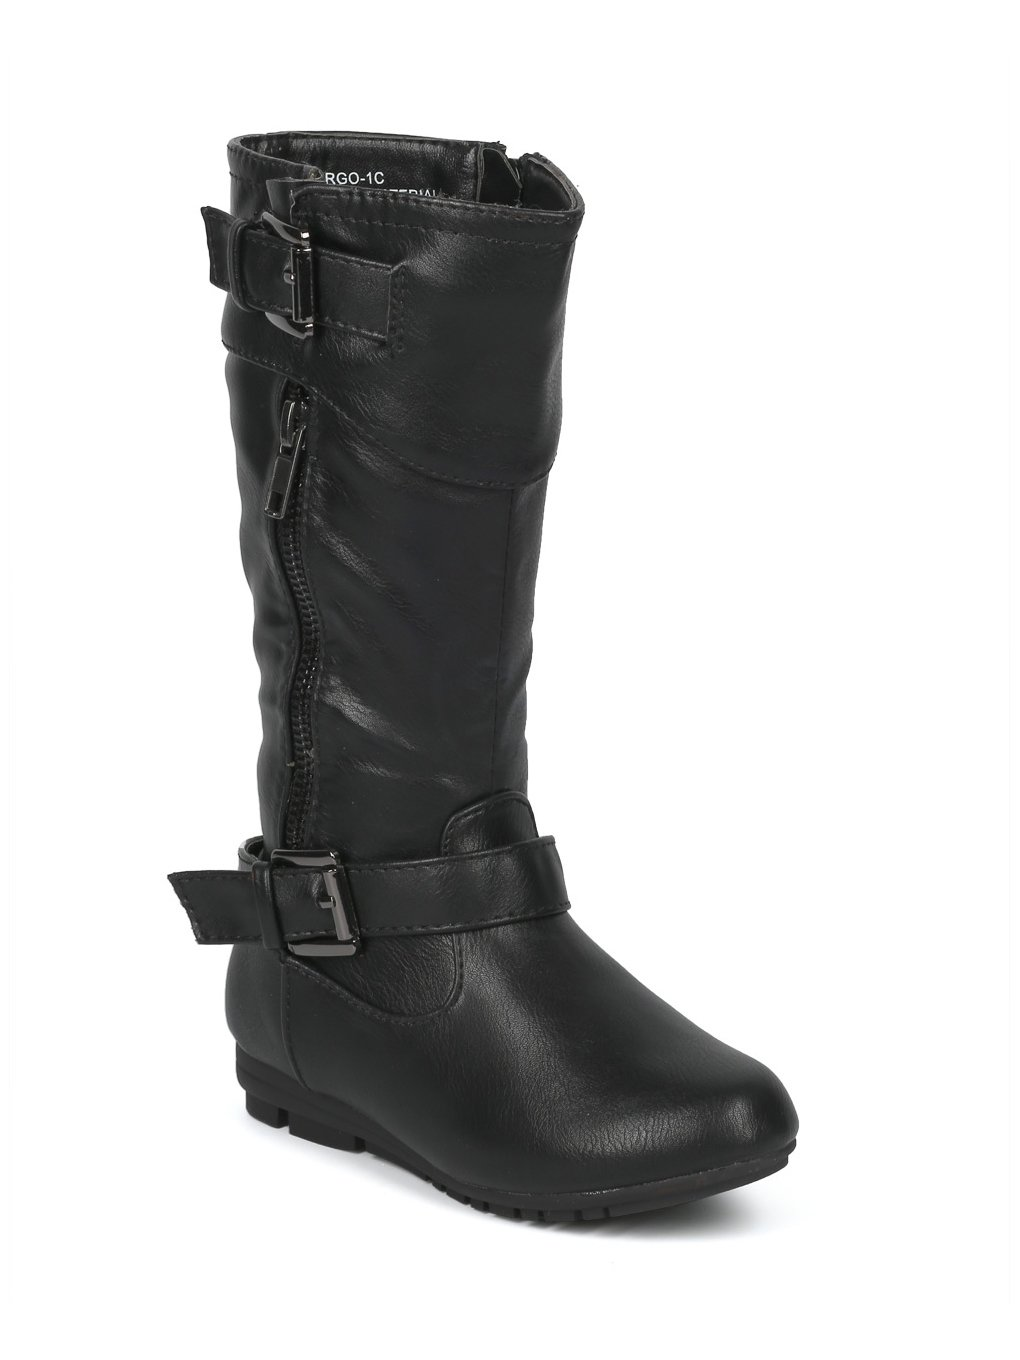 Alrisco Girls Leatherette Buckled Tall Riding Boot HF94 - Black Leatherette (Size: Little Kid 11)